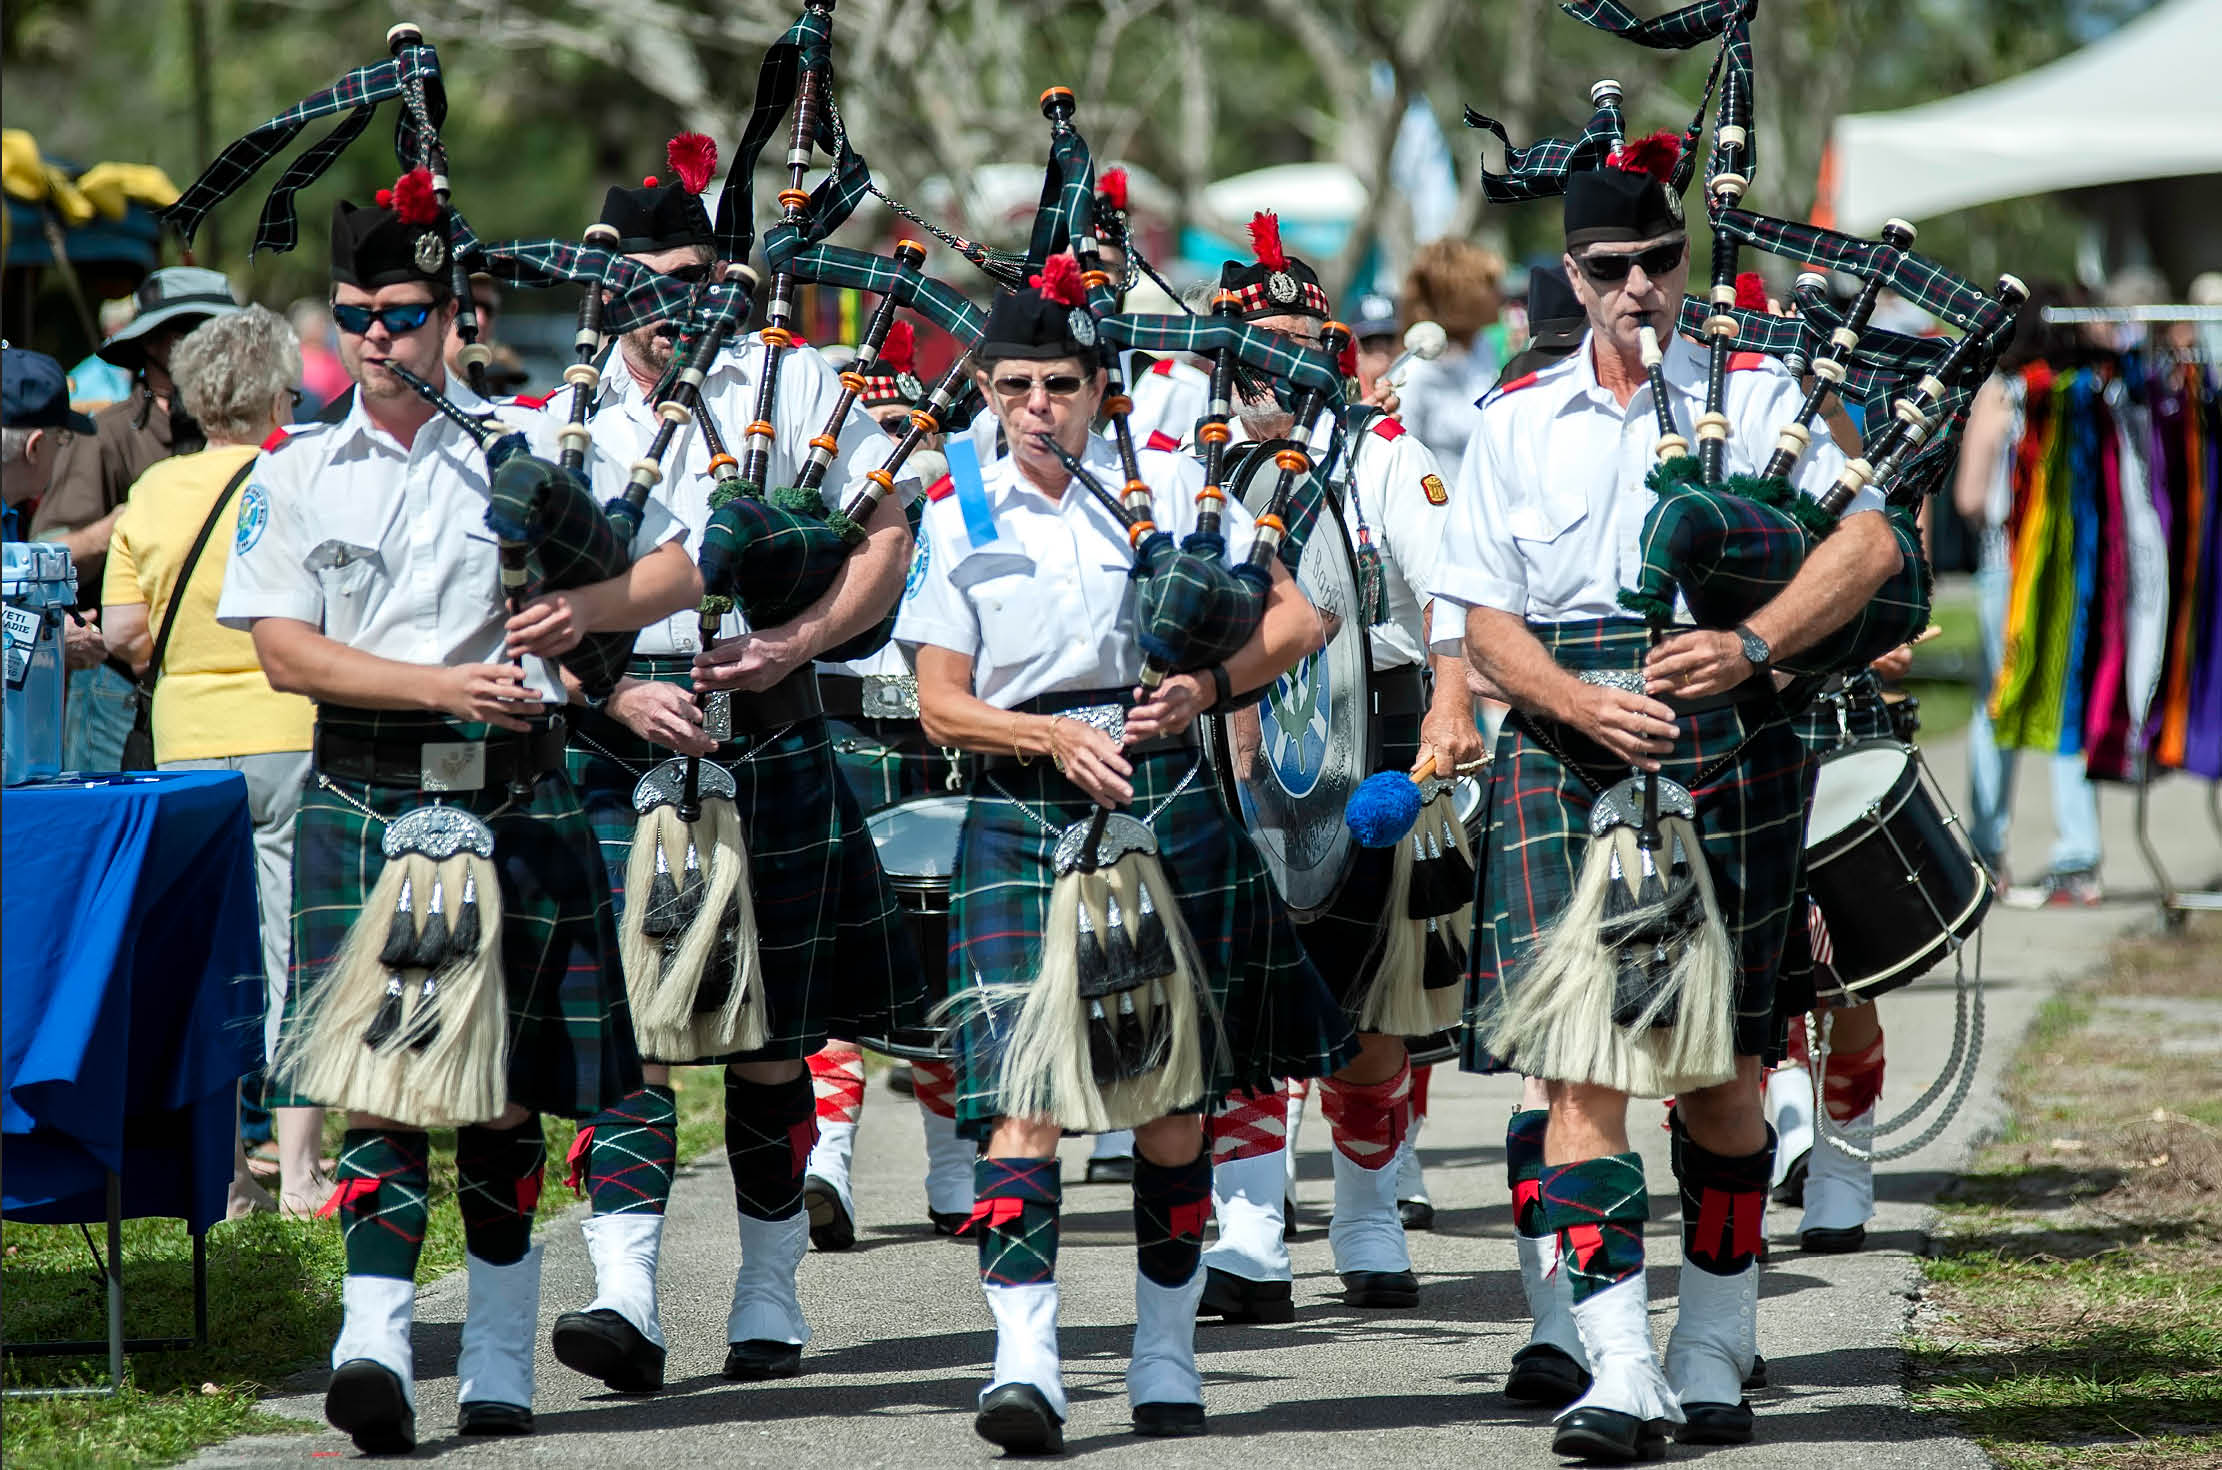 37th Annual Southeast Florida Scottish Festival and Highland Games